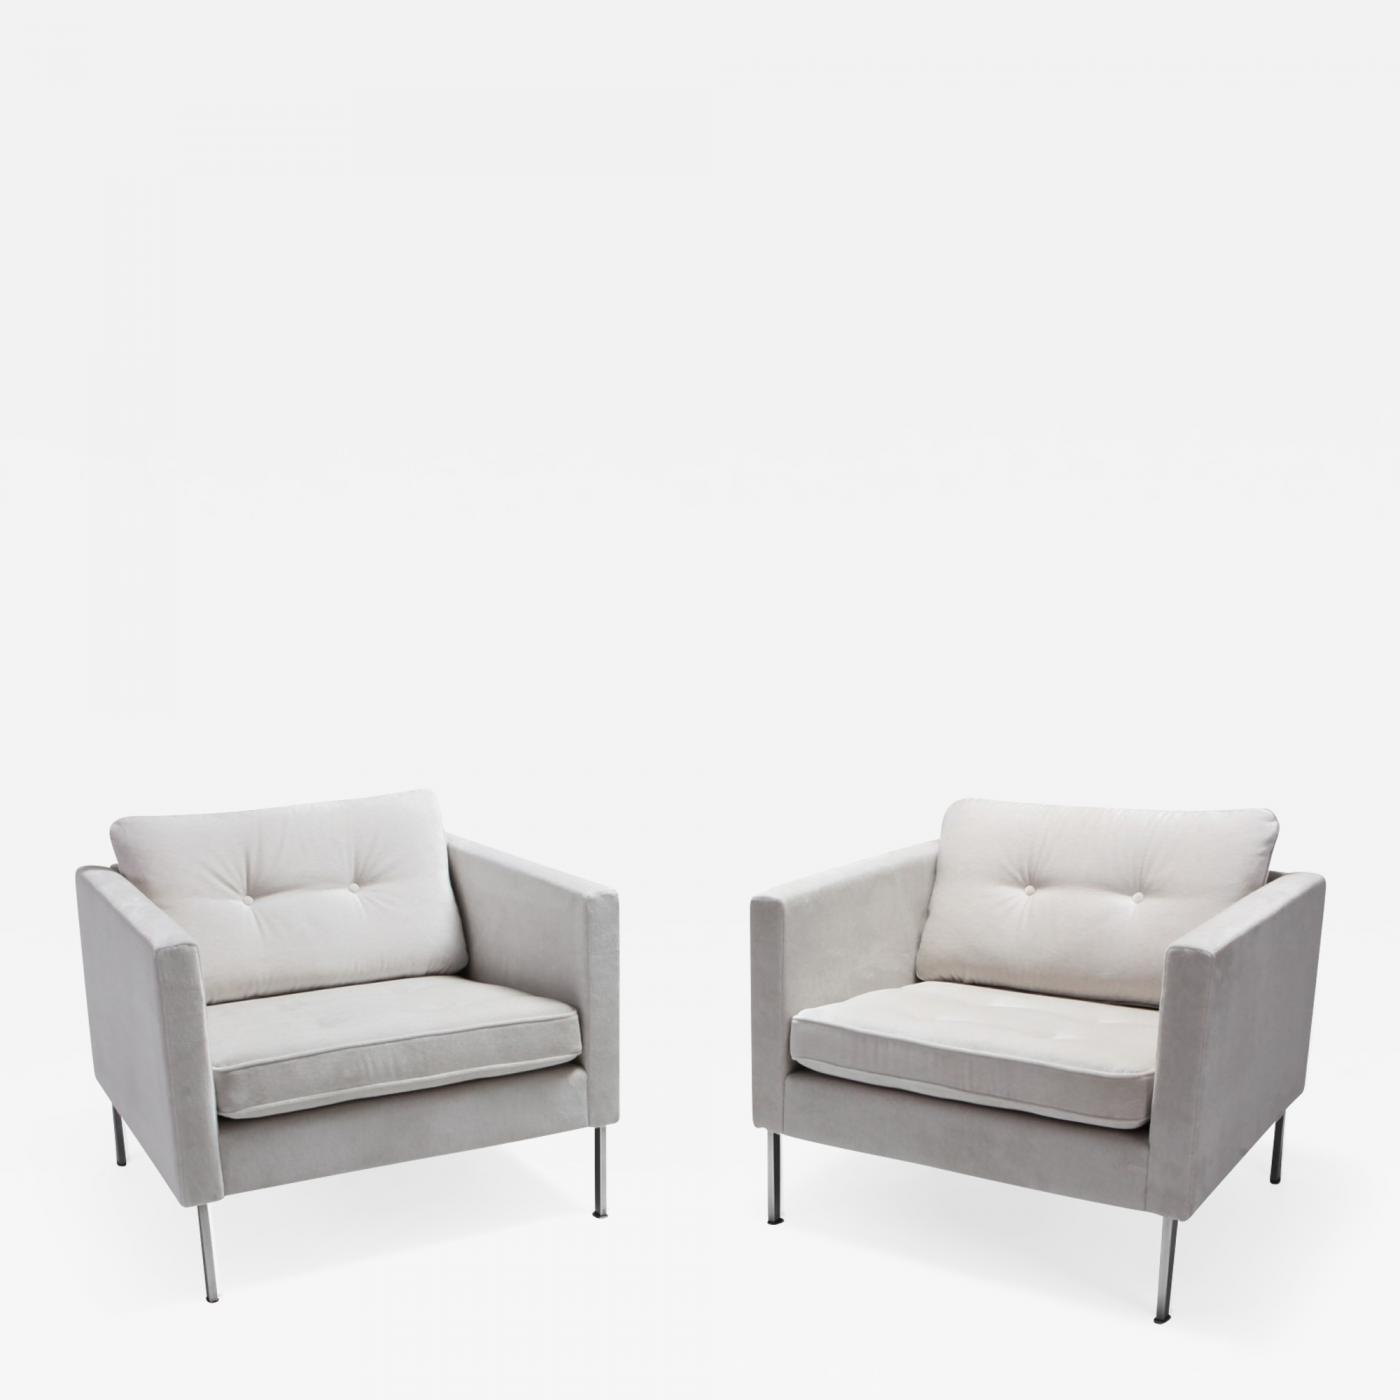 Pierre Paulin Sofa Pierre Paulin 446 Pair Of Rare Club Chairs For Artifort 1968